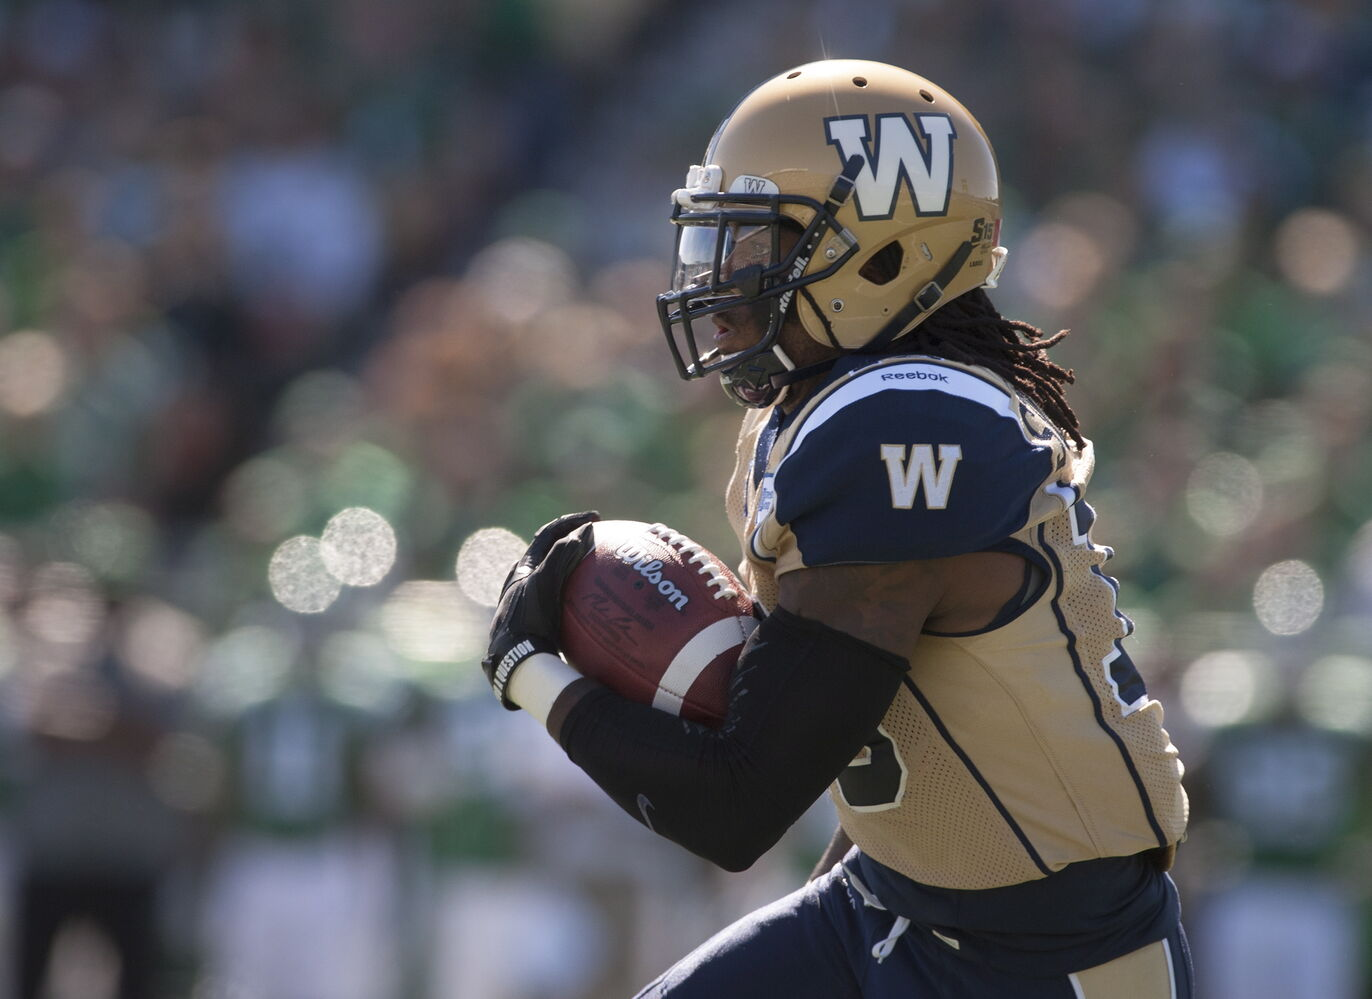 Bombers running back Nic Grigsby runs in a touchdown during the first quarter. (Liam Richards / THE CANADIAN PRESS)